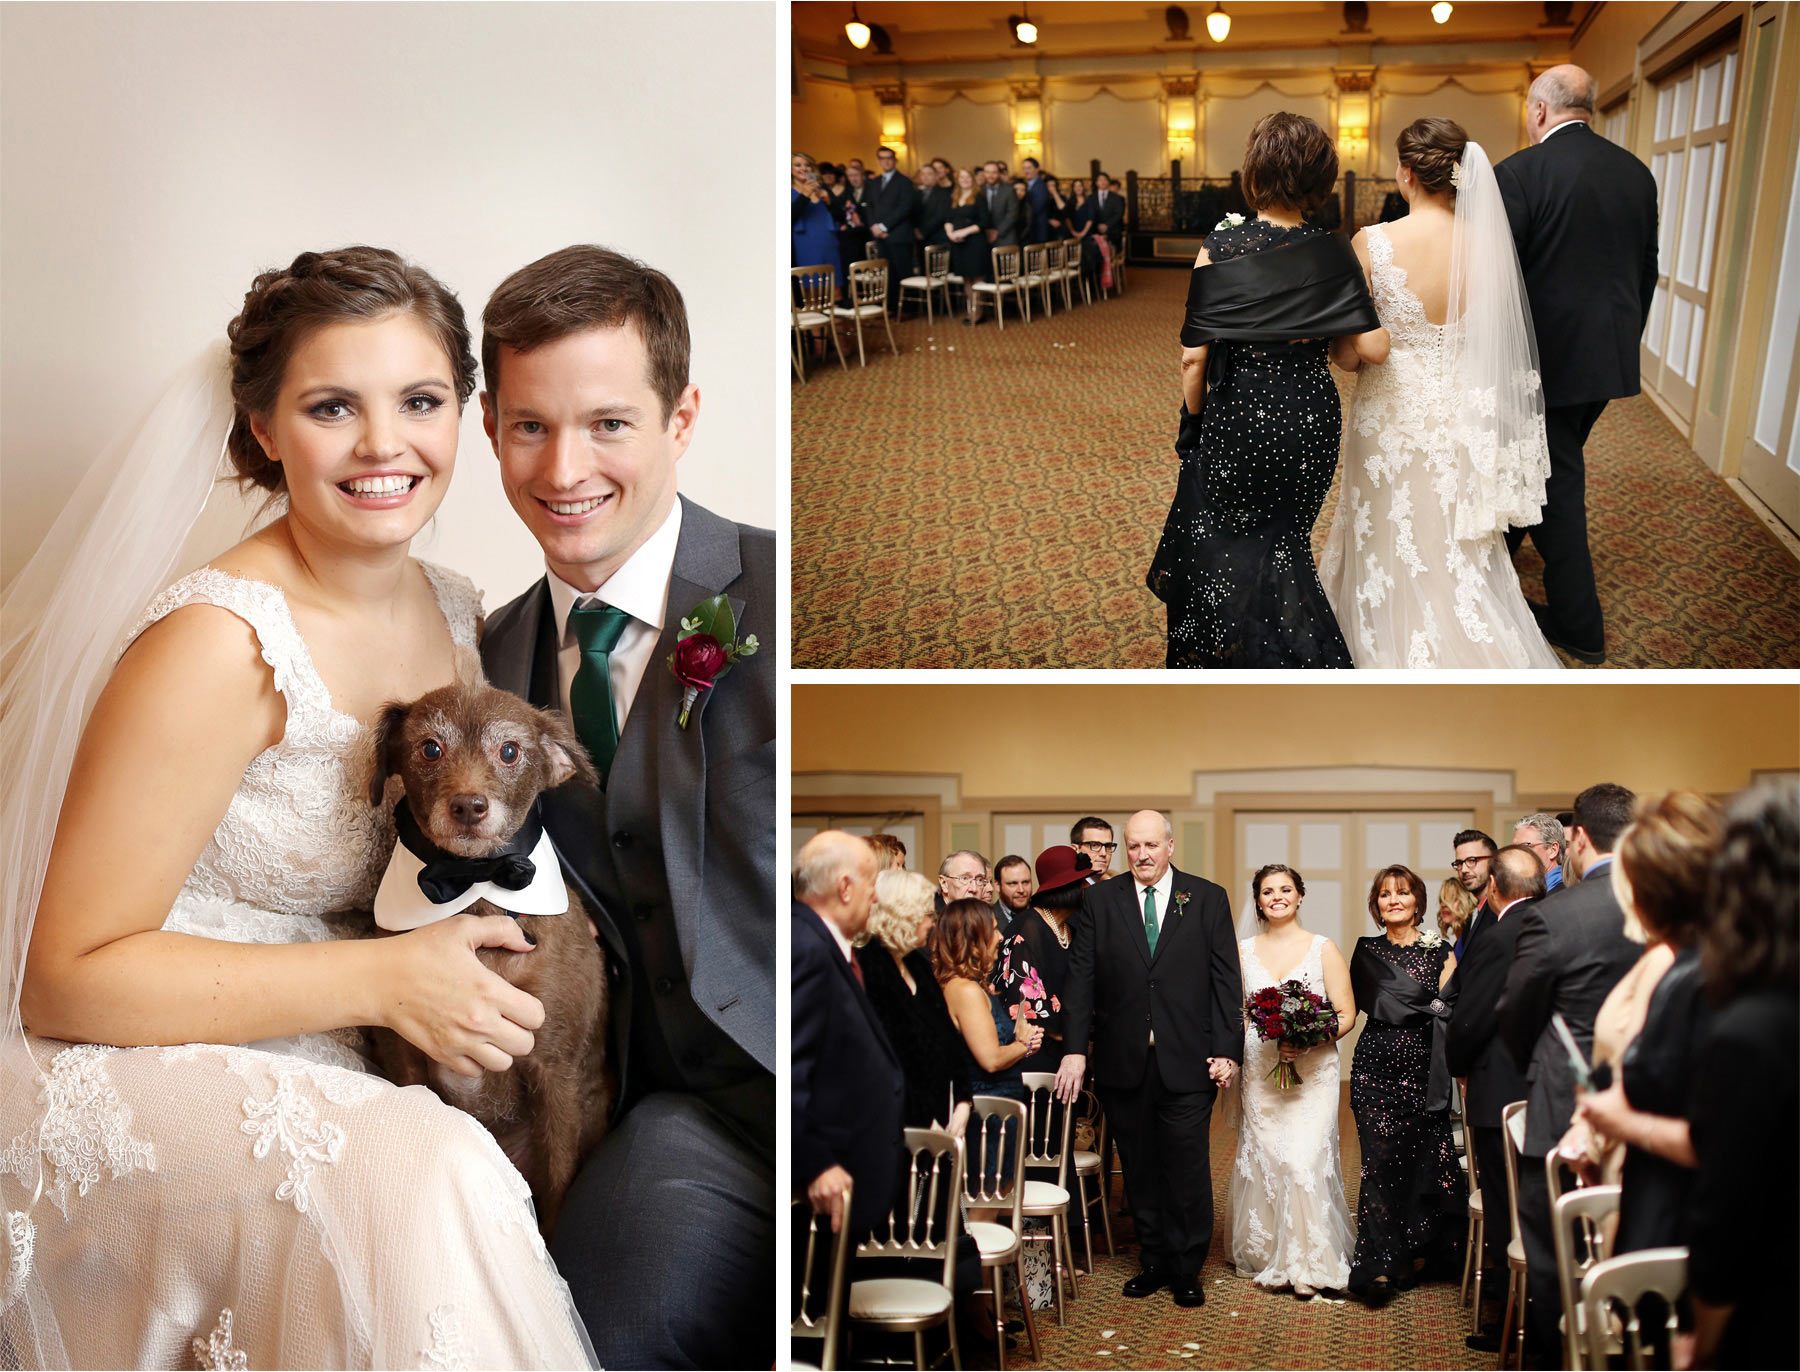 15-Chicago-Illinois-Wedding-Photographer-by-Andrew-Vick-Photography-Winter-Stan-Mansion-Bride-Groom-Dog-Bowtie-Ceremony-Processional-Parents-Mother-Father-Colleen-and-Mike.jpg